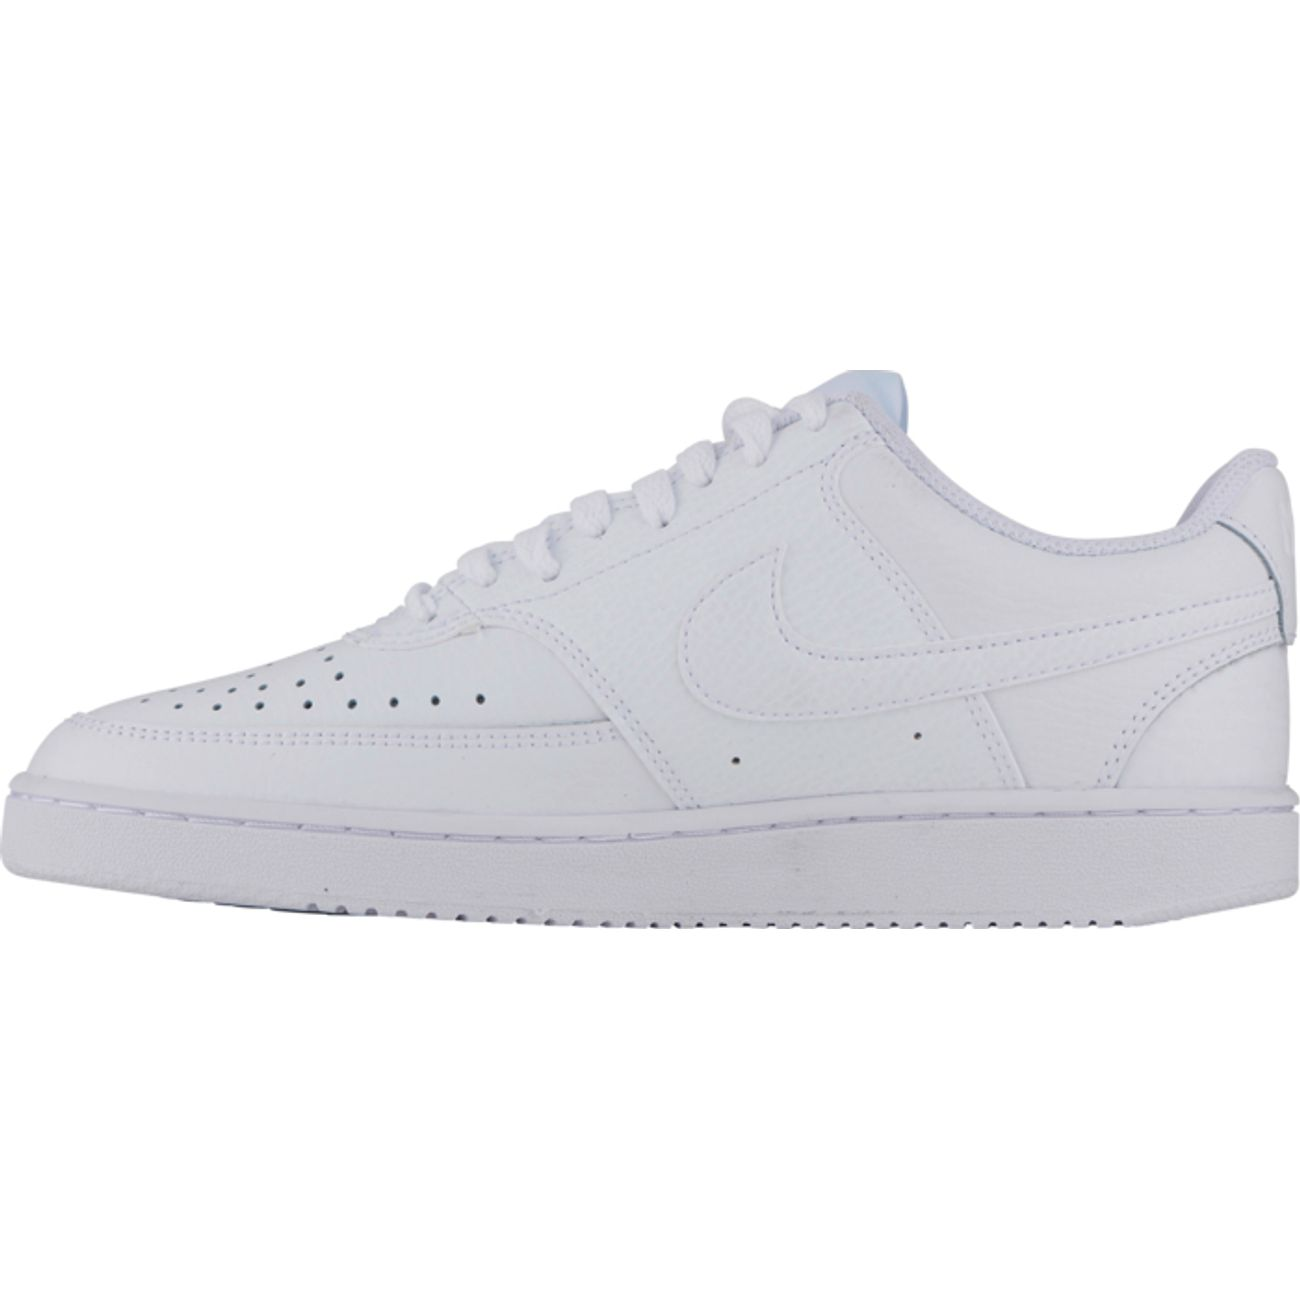 CHAUSSURES BASSES Loisirs femme NIKE COURT VISION LOW